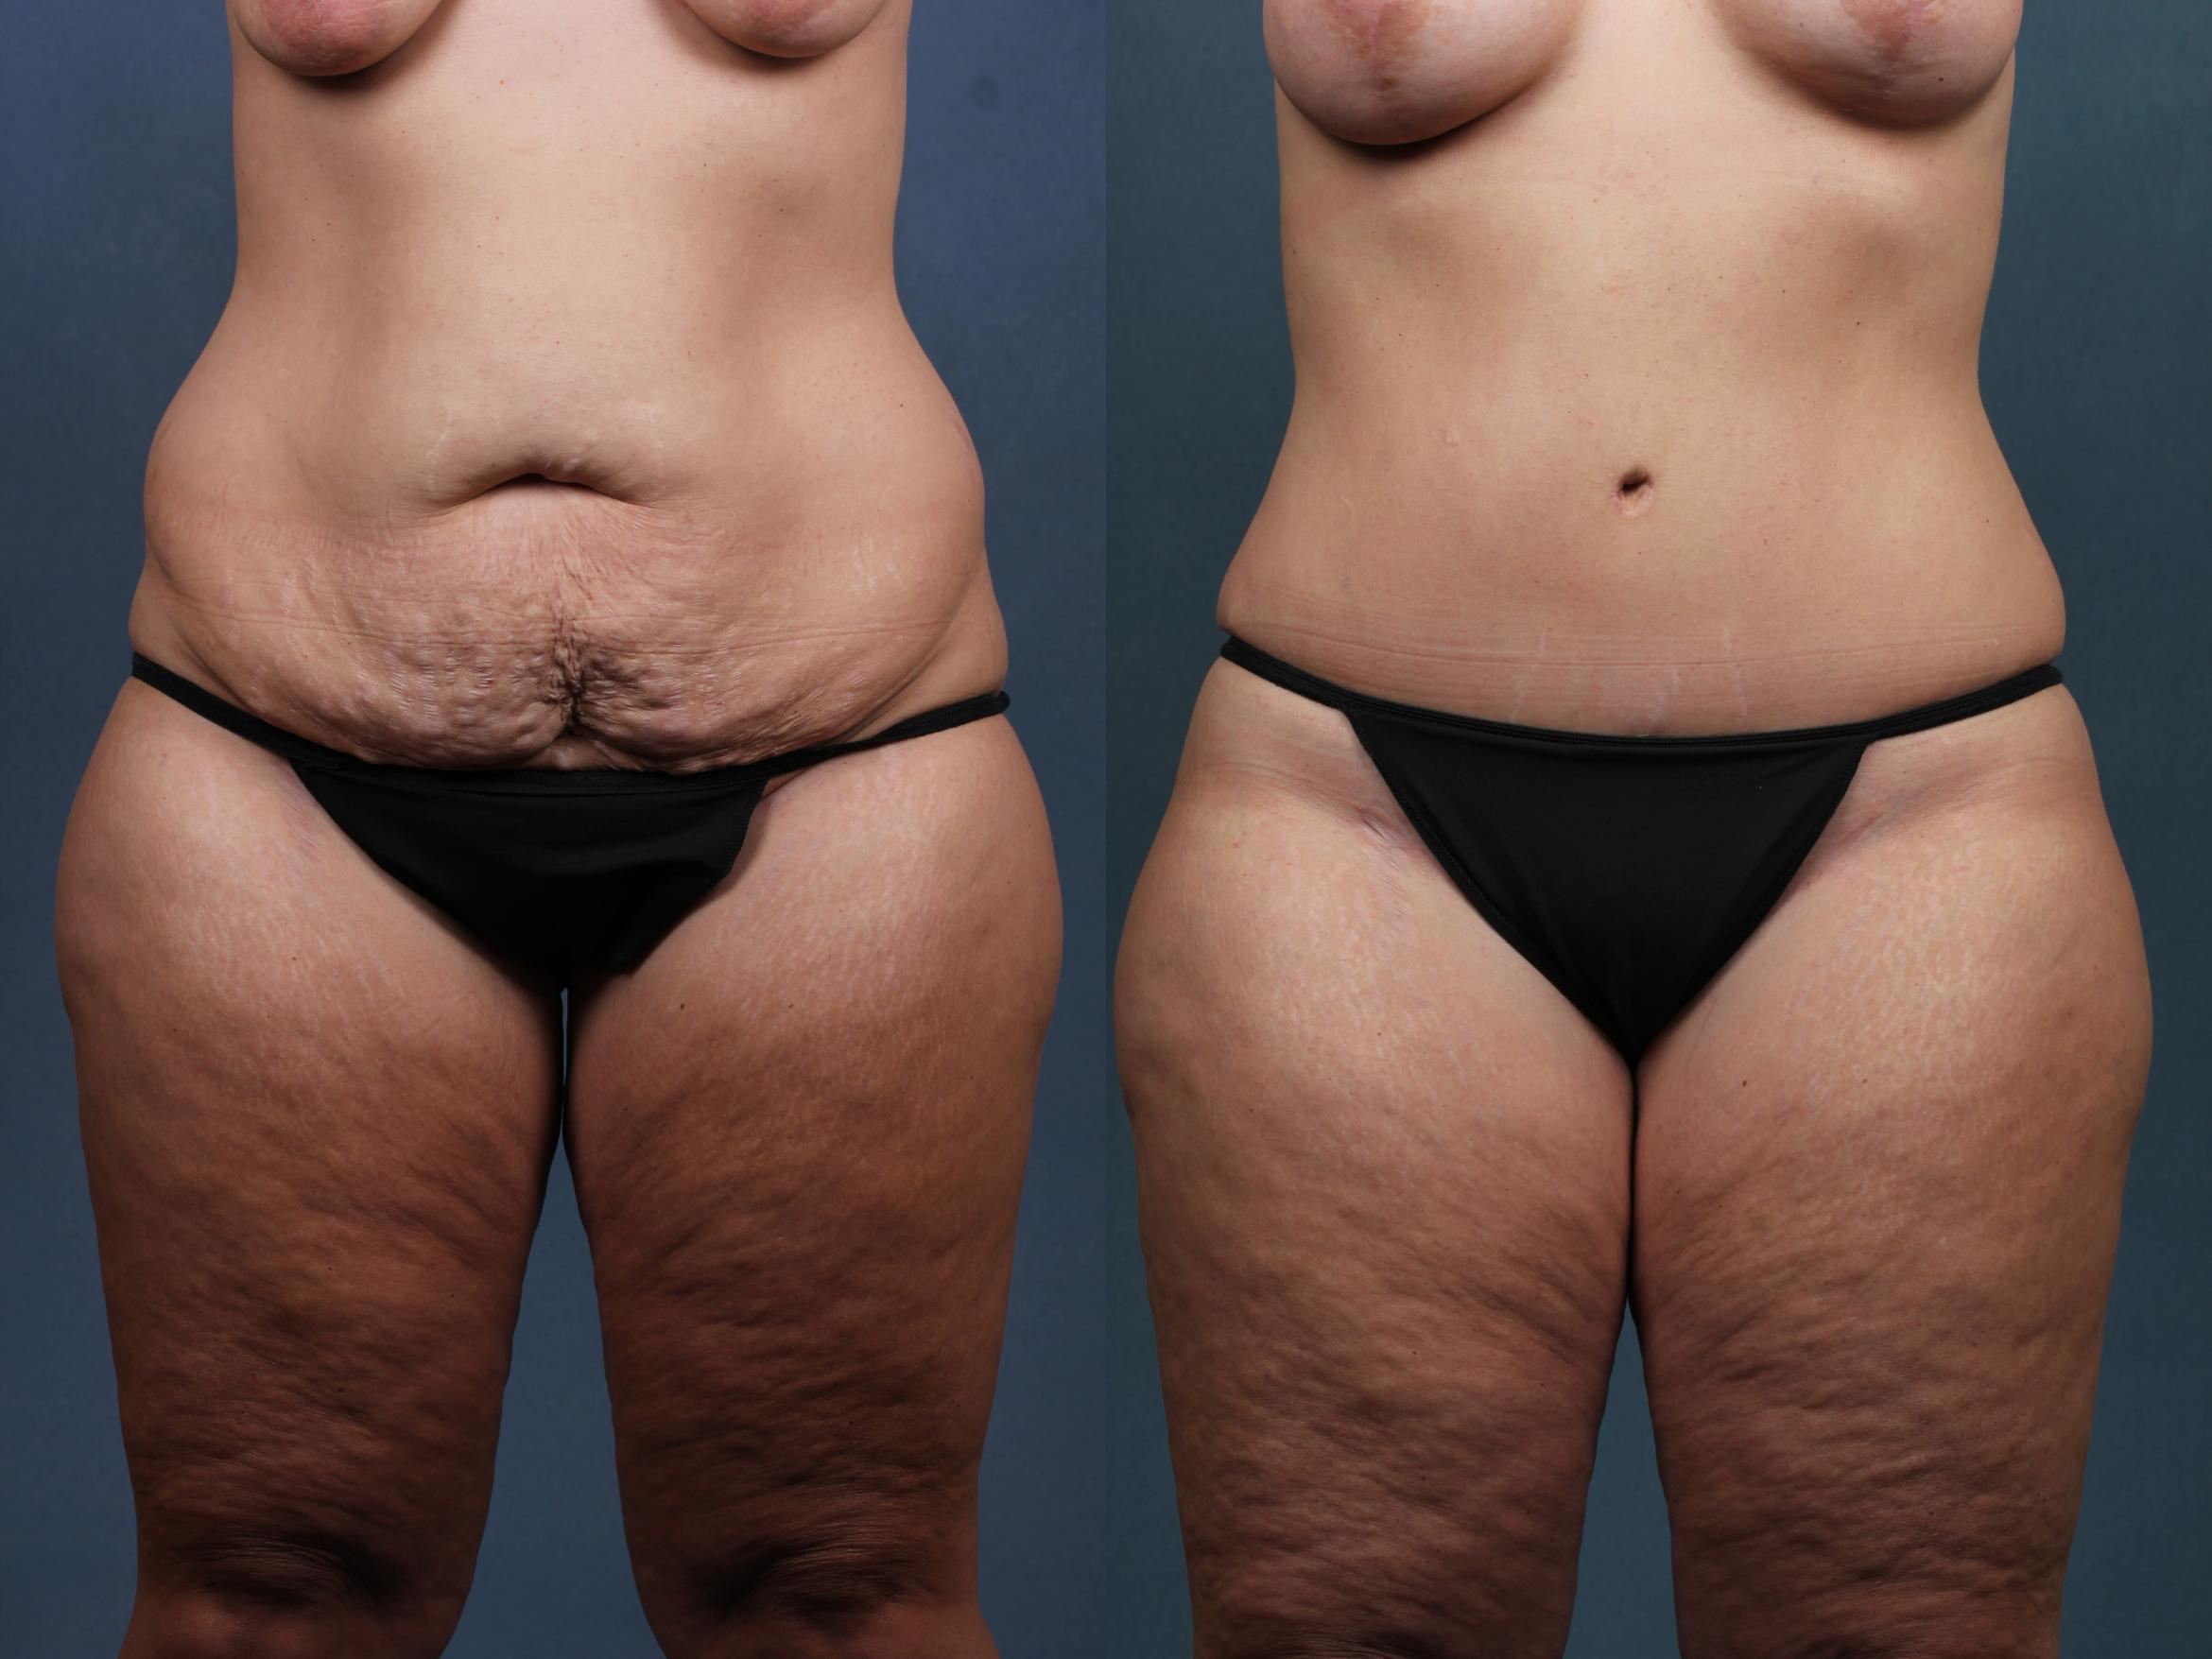 Tummy Tuck Before After Photo Gallery Louisville Ky Caloaesthetics Plastic Surgery Center